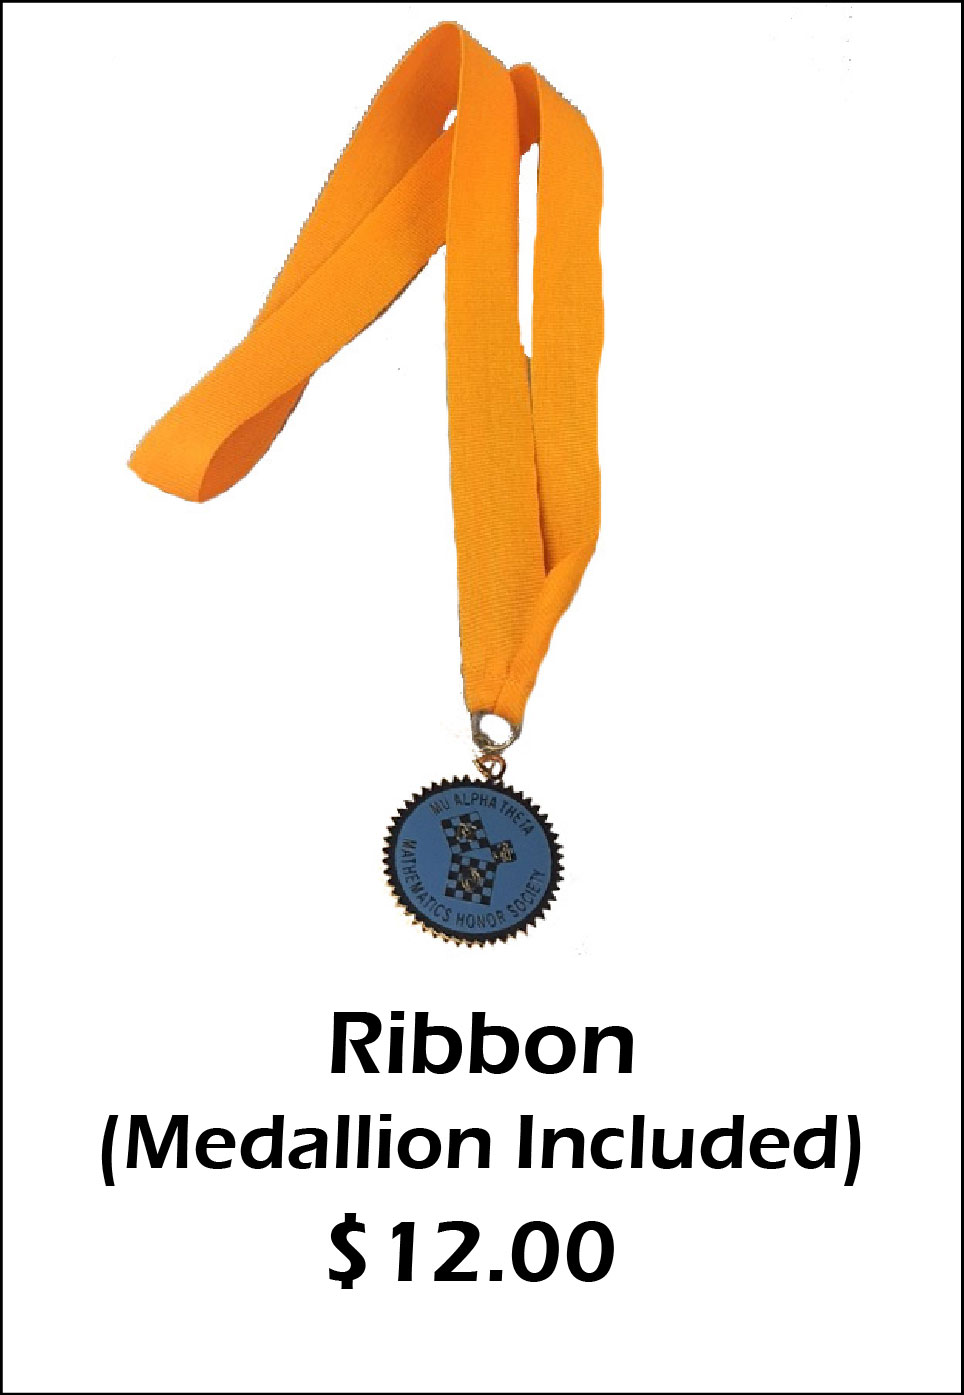 Ribbon (Medallion included) - $12